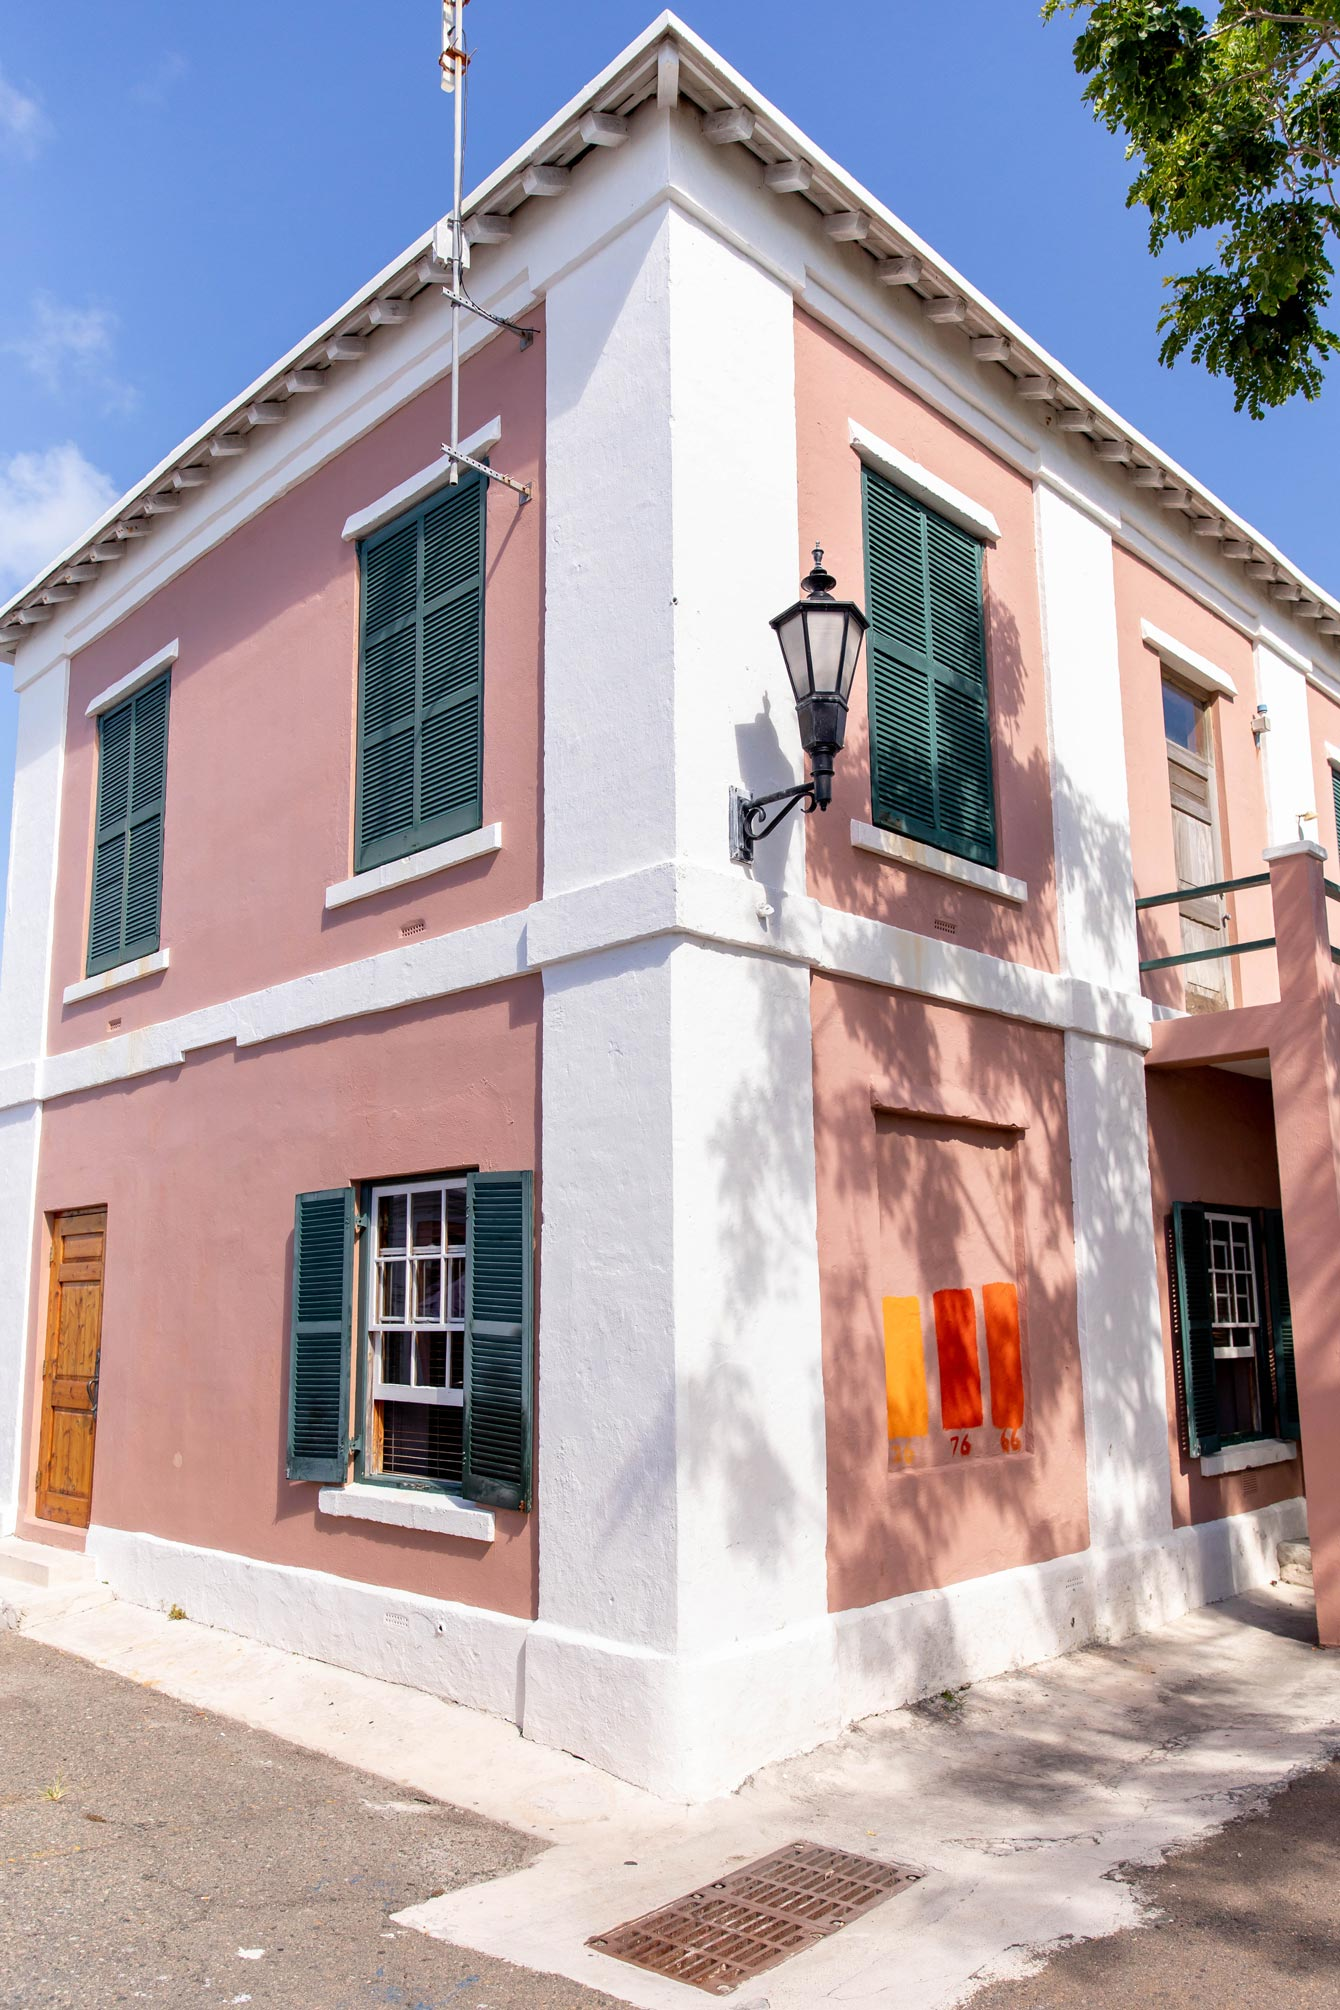 St. George's Bermuda Colorful Buildings